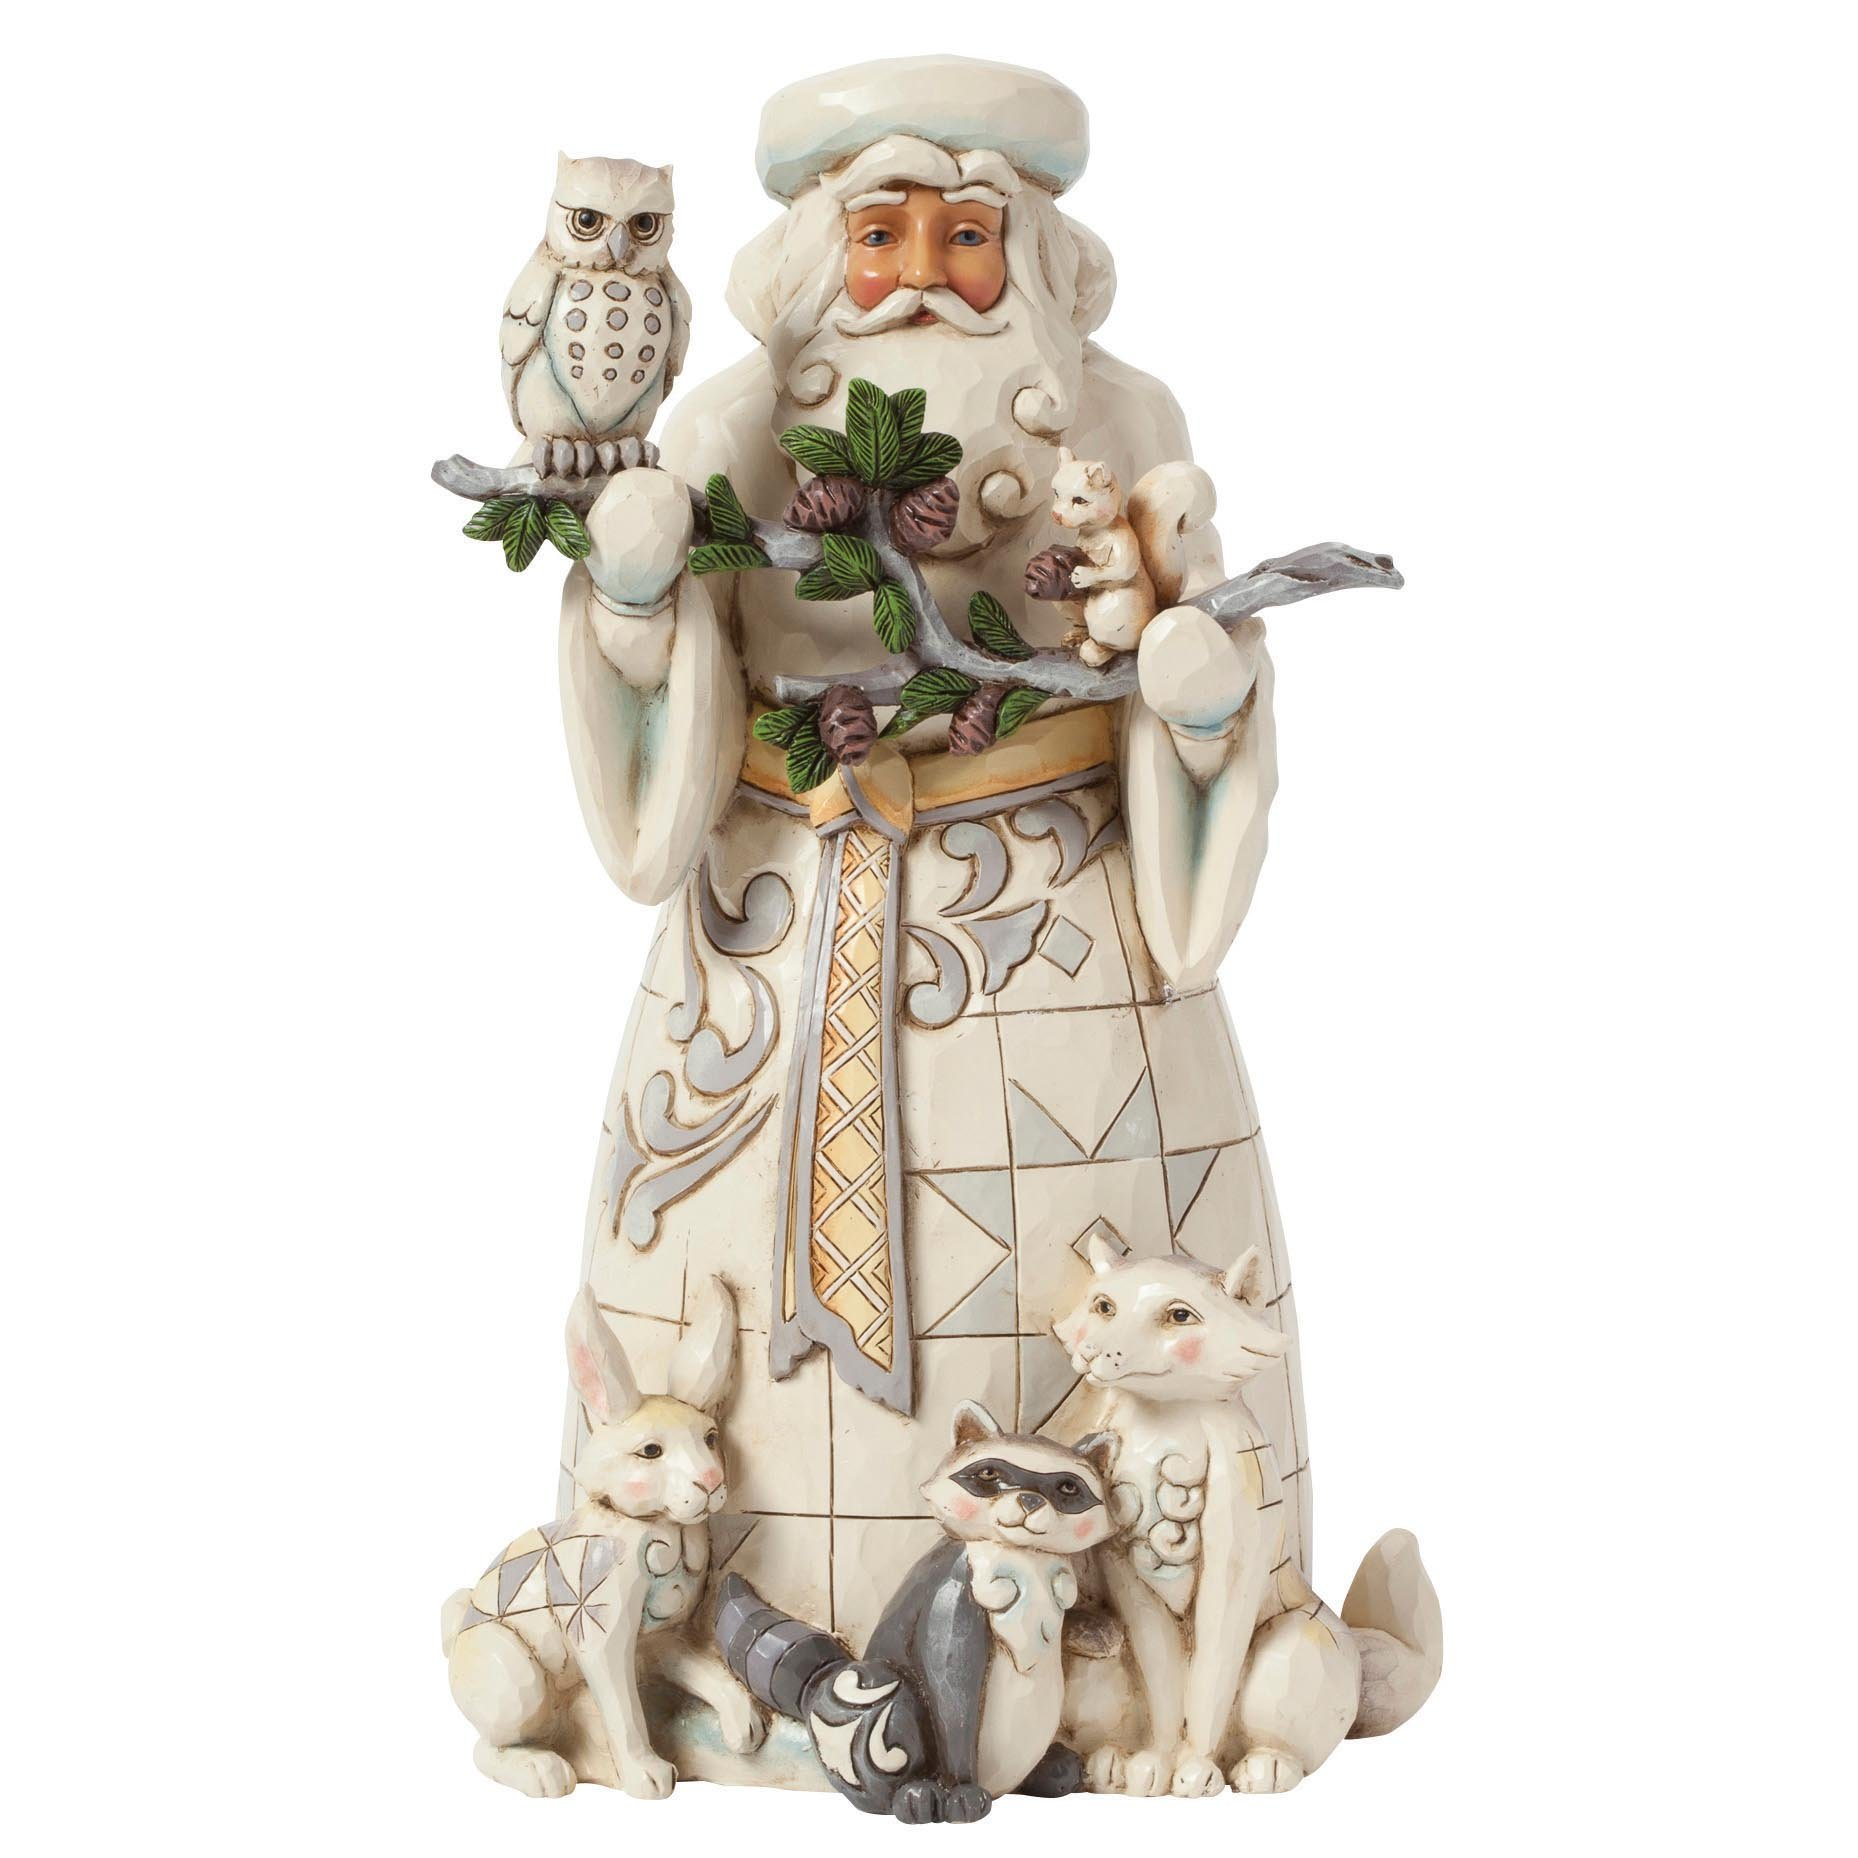 Heartwood Creek by Jim Shore Woodland Santa Claus Figurine Sculpture by Jim Shore for Enesco